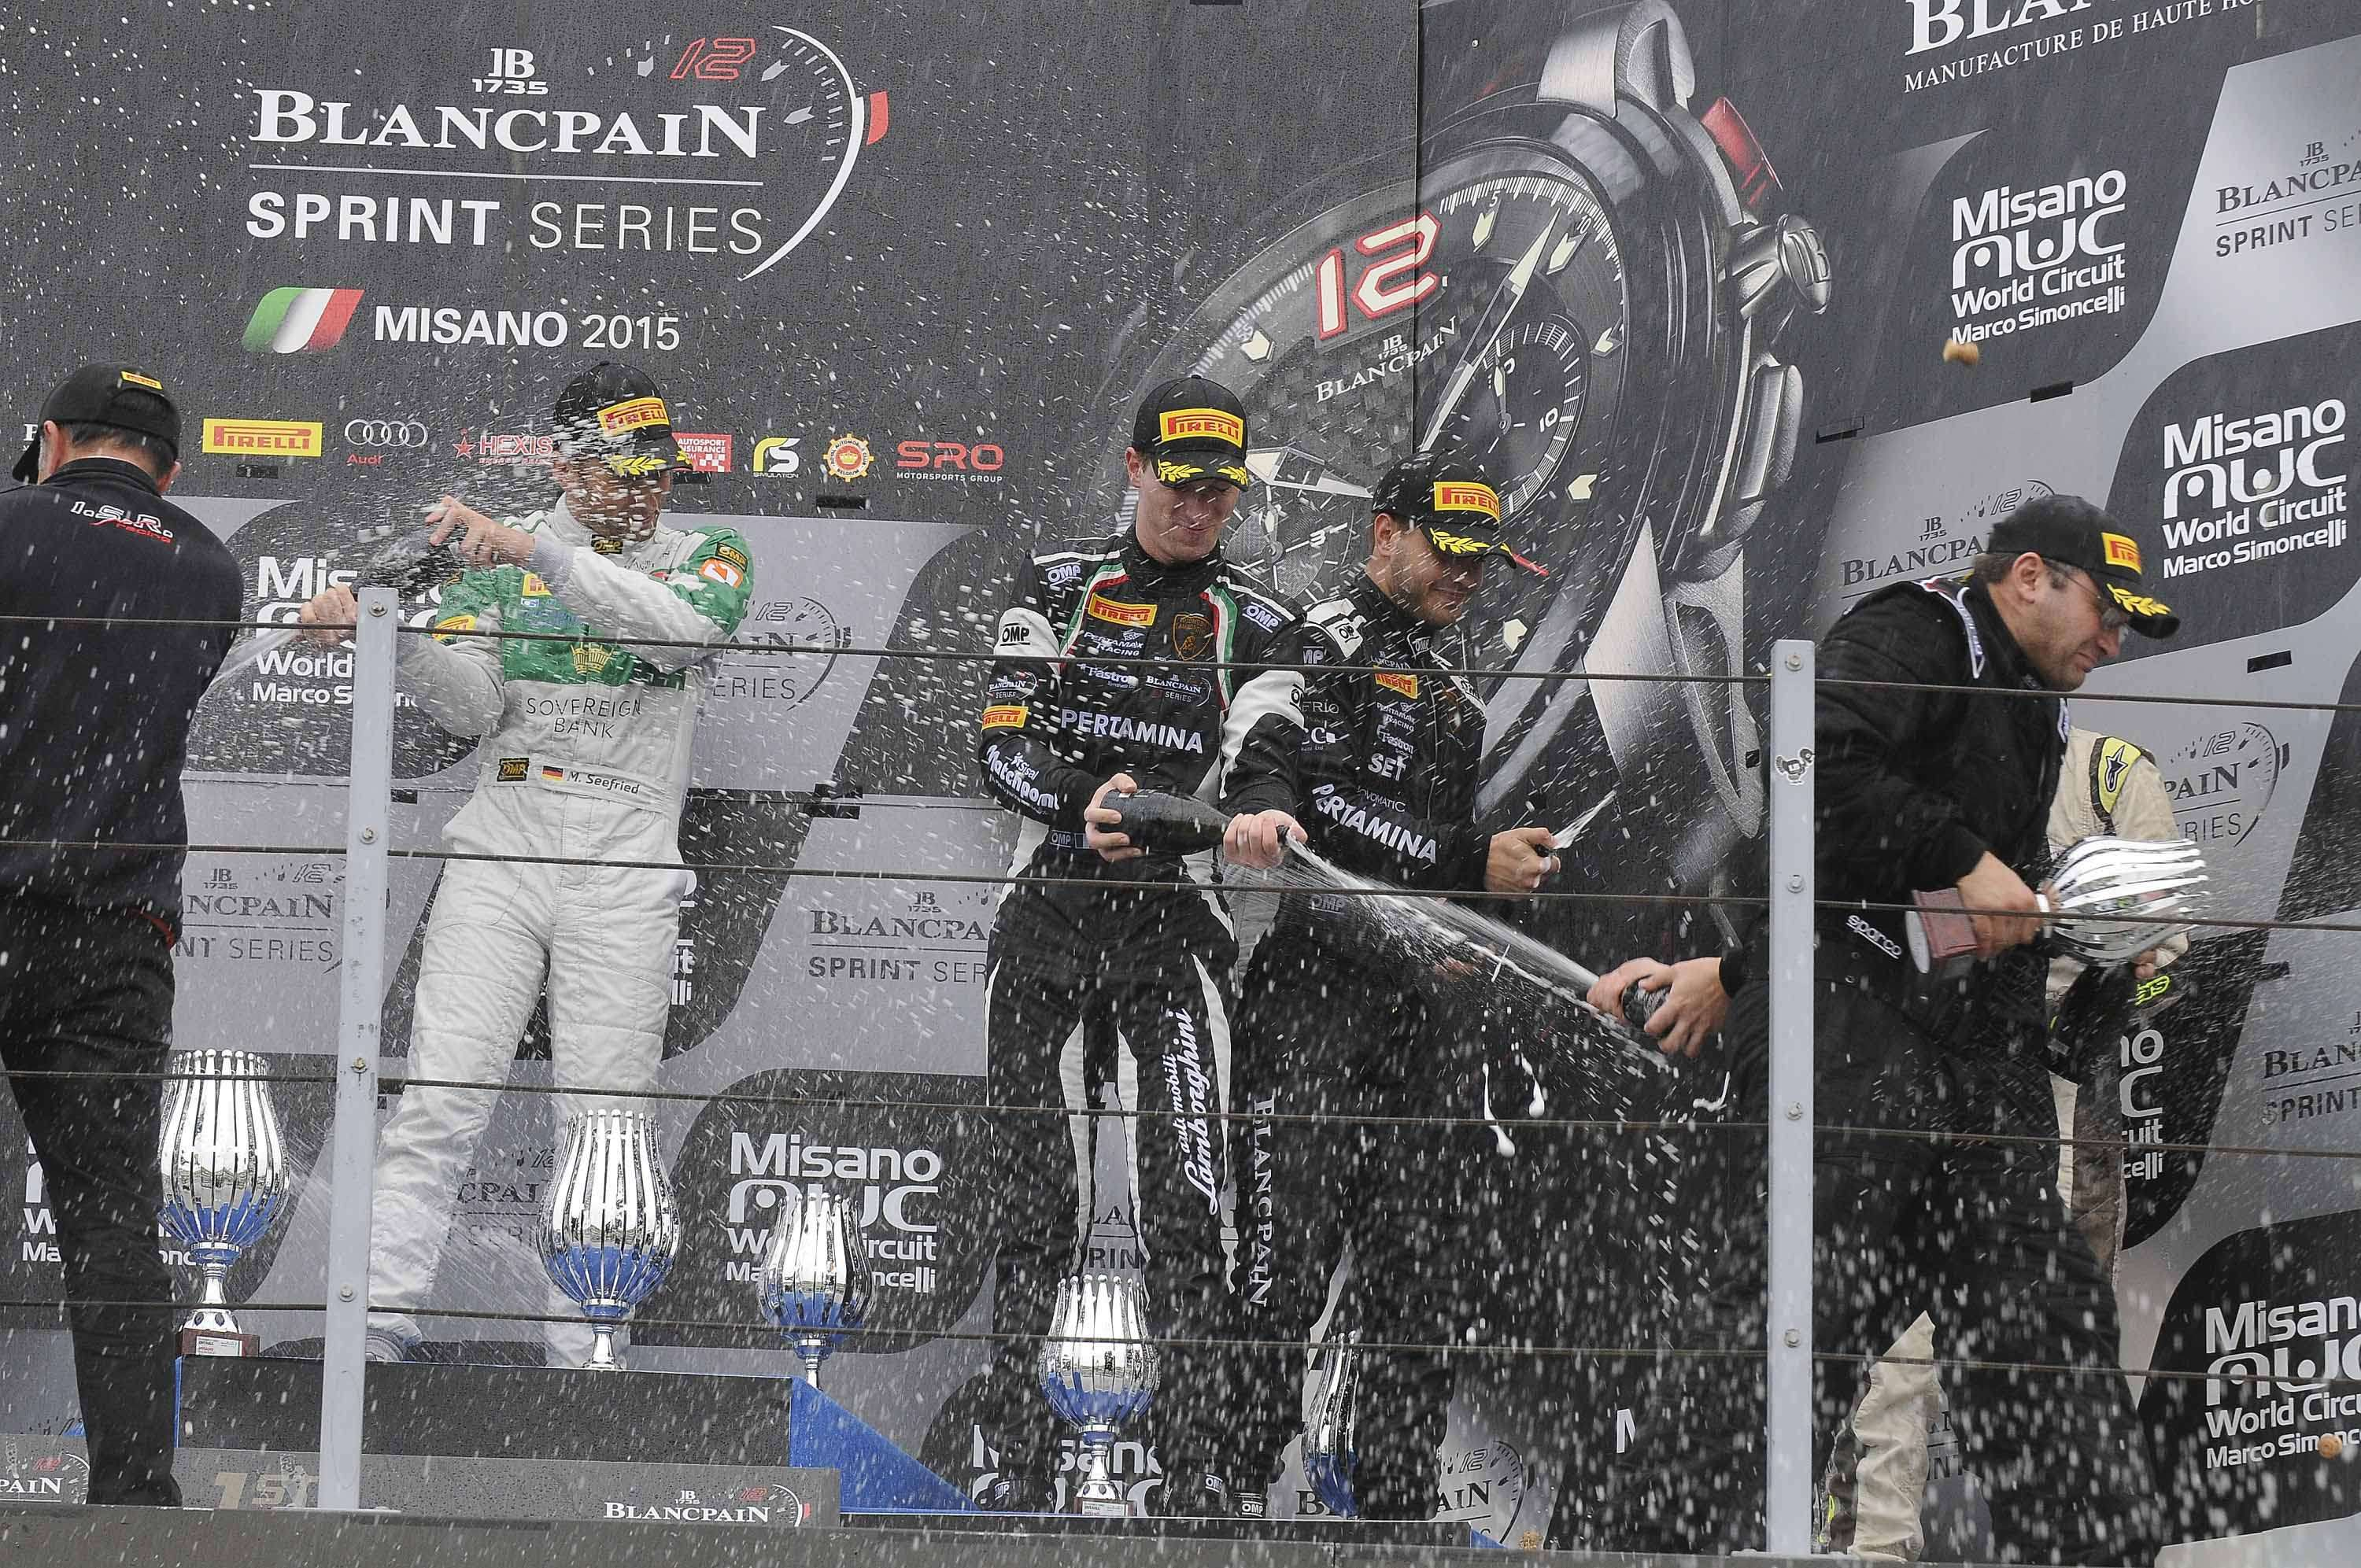 Podium finish in Misano Blancpain Sprint Series for the debuting Lamborghini Huracán GT3